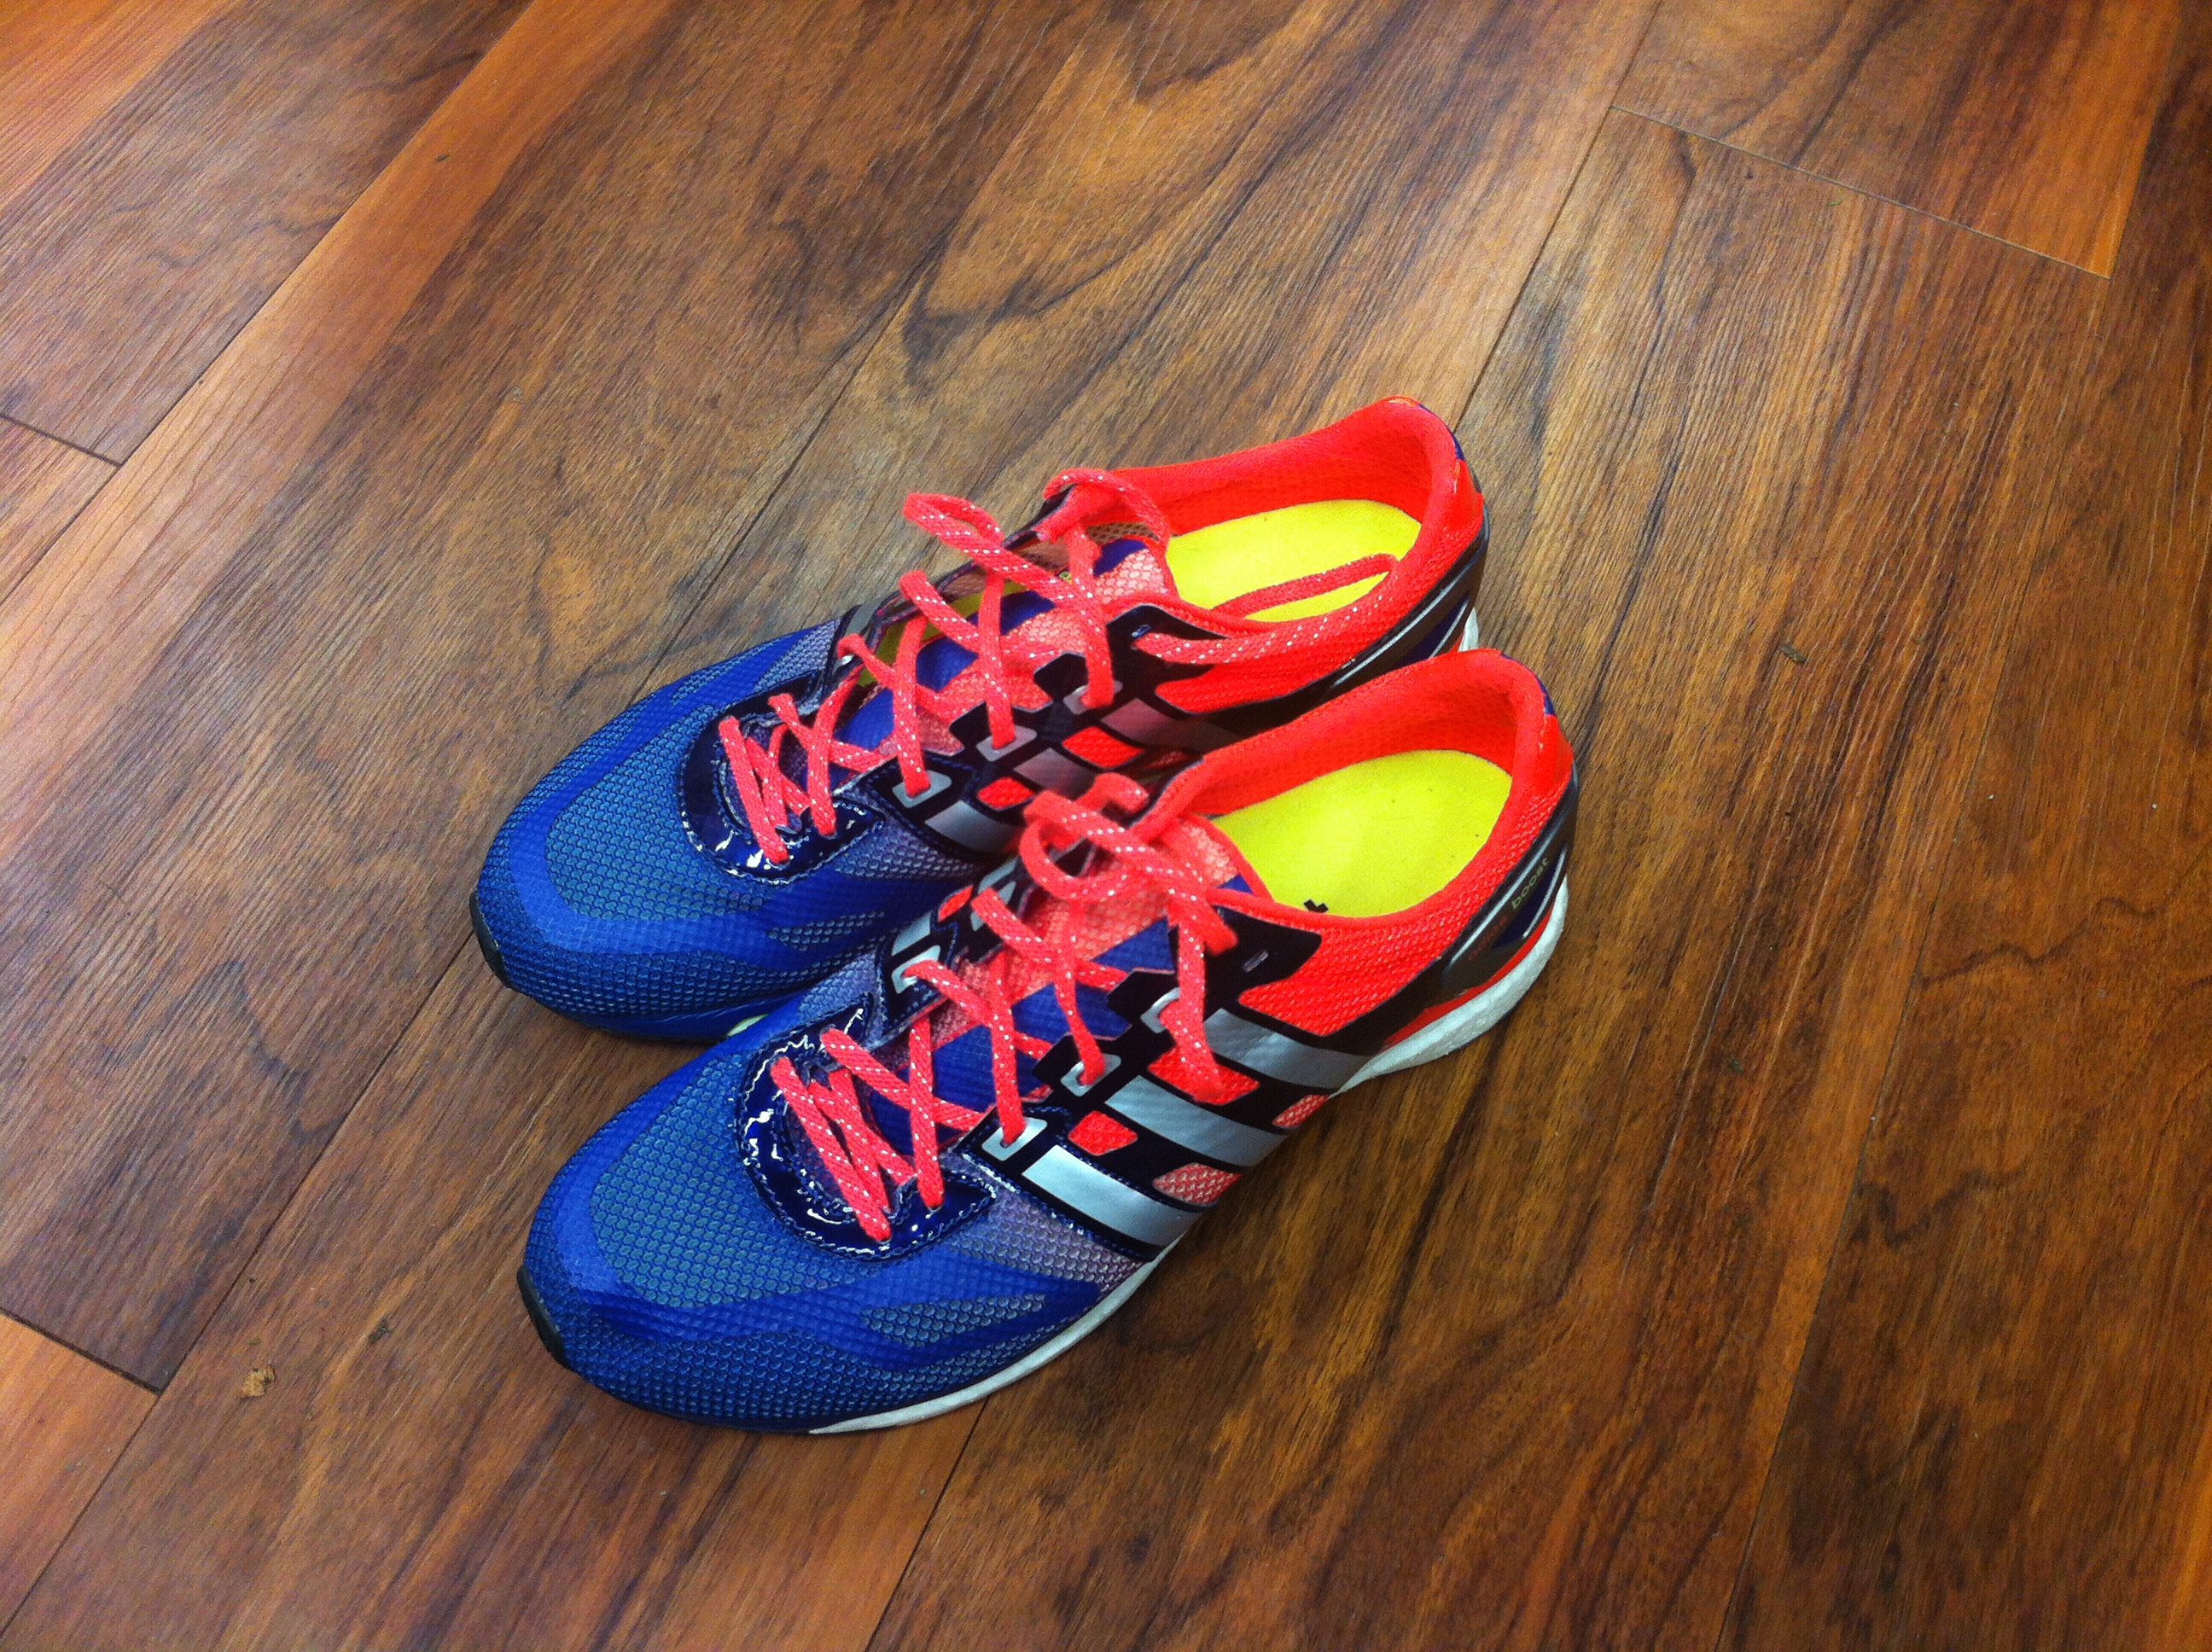 the best attitude 27256 ae427 The pair of My first impressions of the adidias adiZero adios Boost shoes I  tested